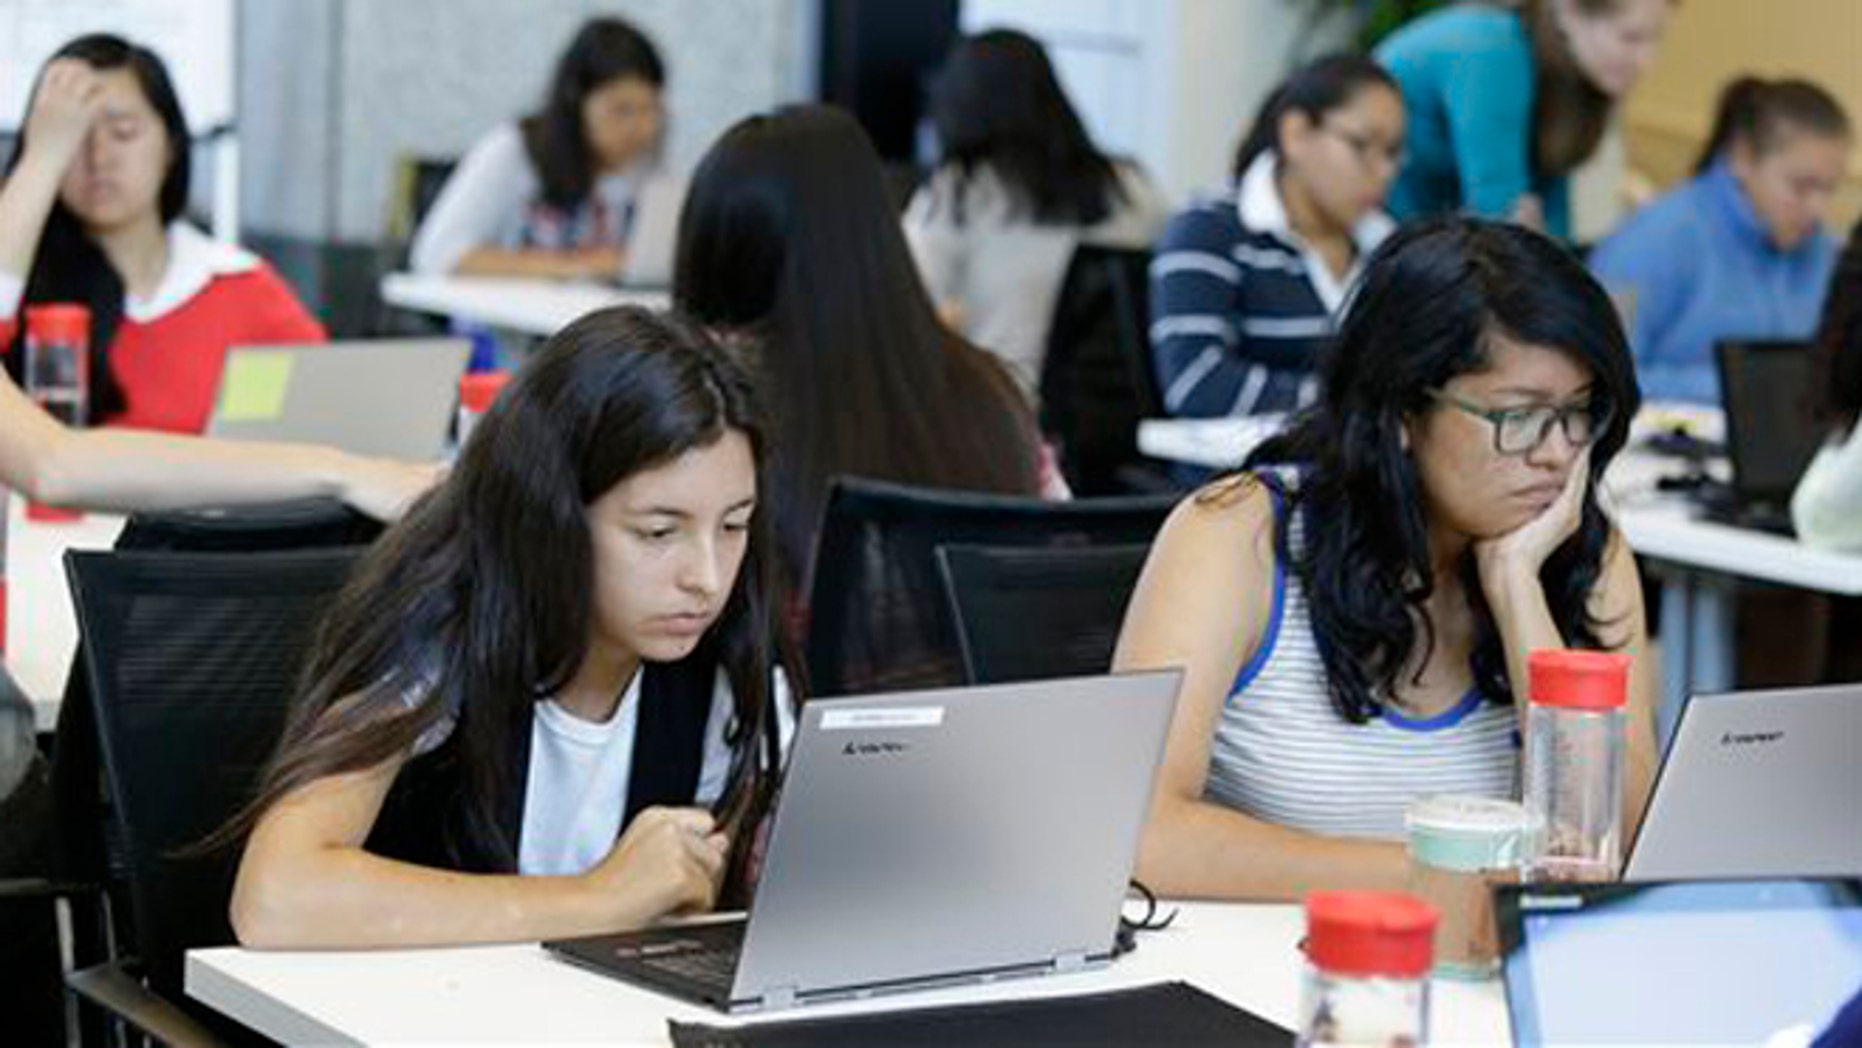 In this photo taken Wednesday, June 18, 2014, Bryanna Gilges, 15, left, and Yvonne Gonzalez, 17, right, work at completing an exercise during a Girls Who Code class at Adobe Systems in San Jose, Calif. Google is partnering with Girls Who Code, a national non-profit organization that aims to inspire, educate and equip young women for futures in the computing-related fields. (AP Photo/Eric Risberg)